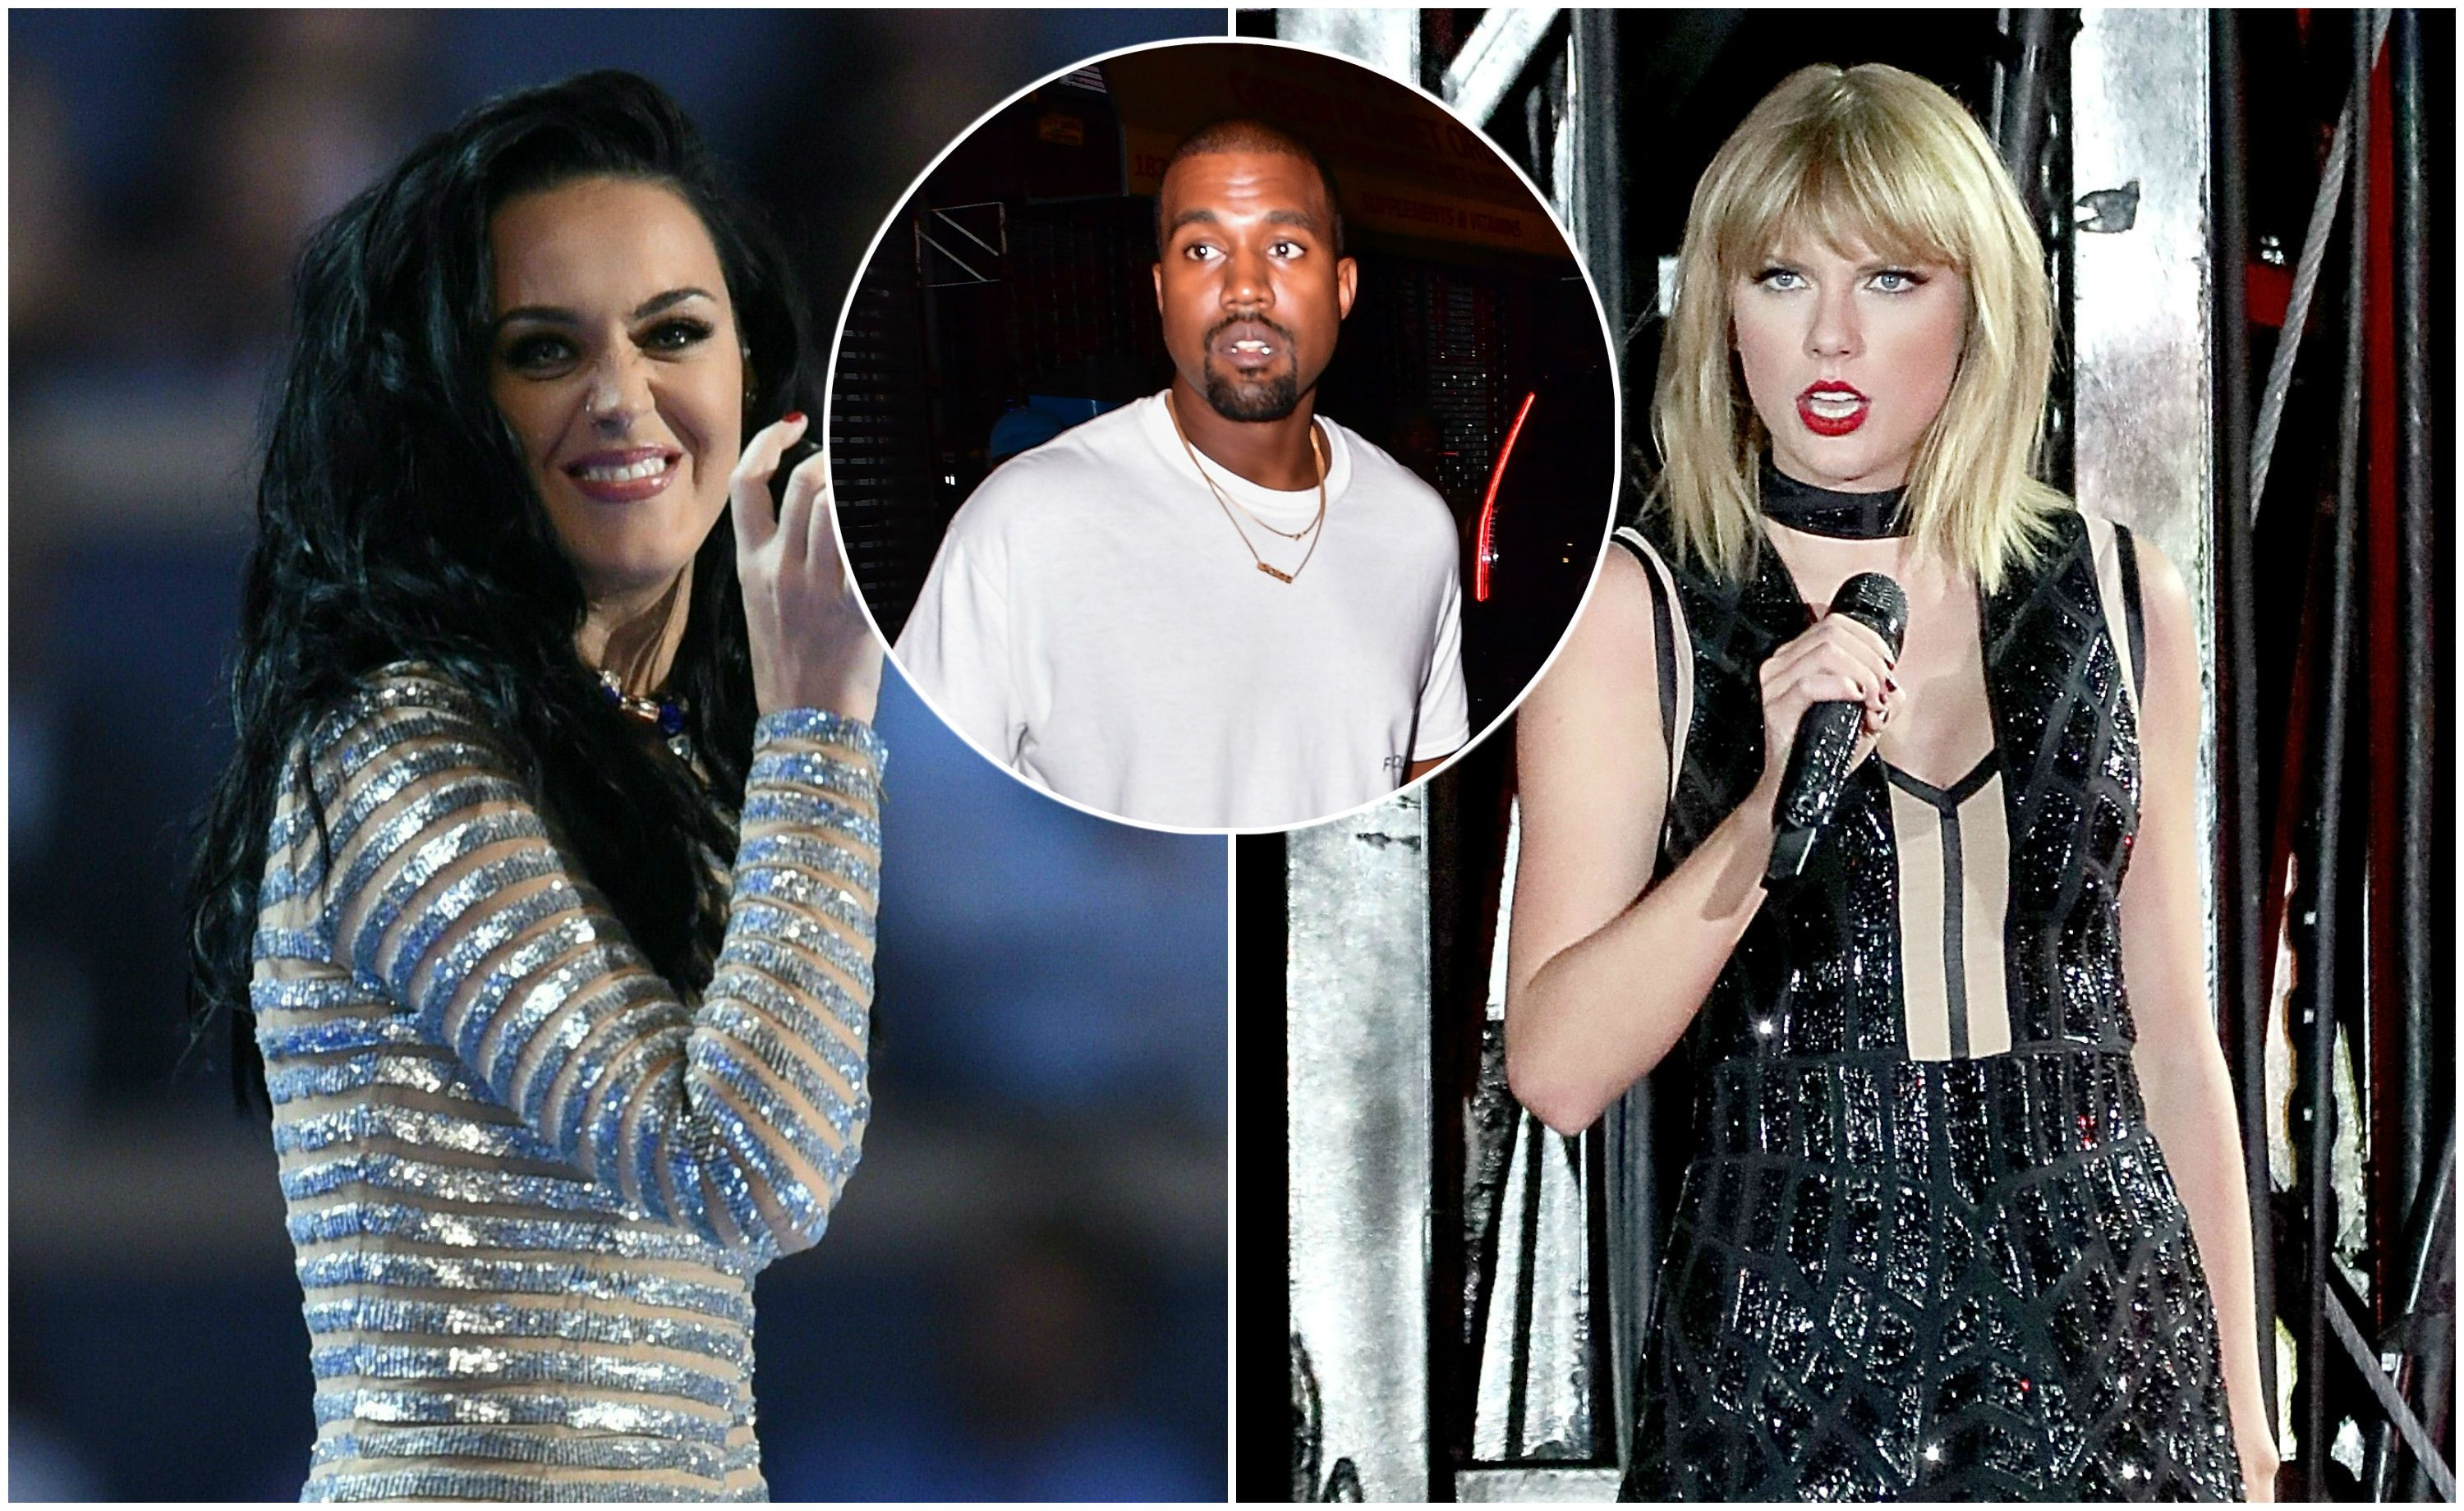 Katy Perry Takes Another Shot At Taylor Swift Courtesy Of Kanye West